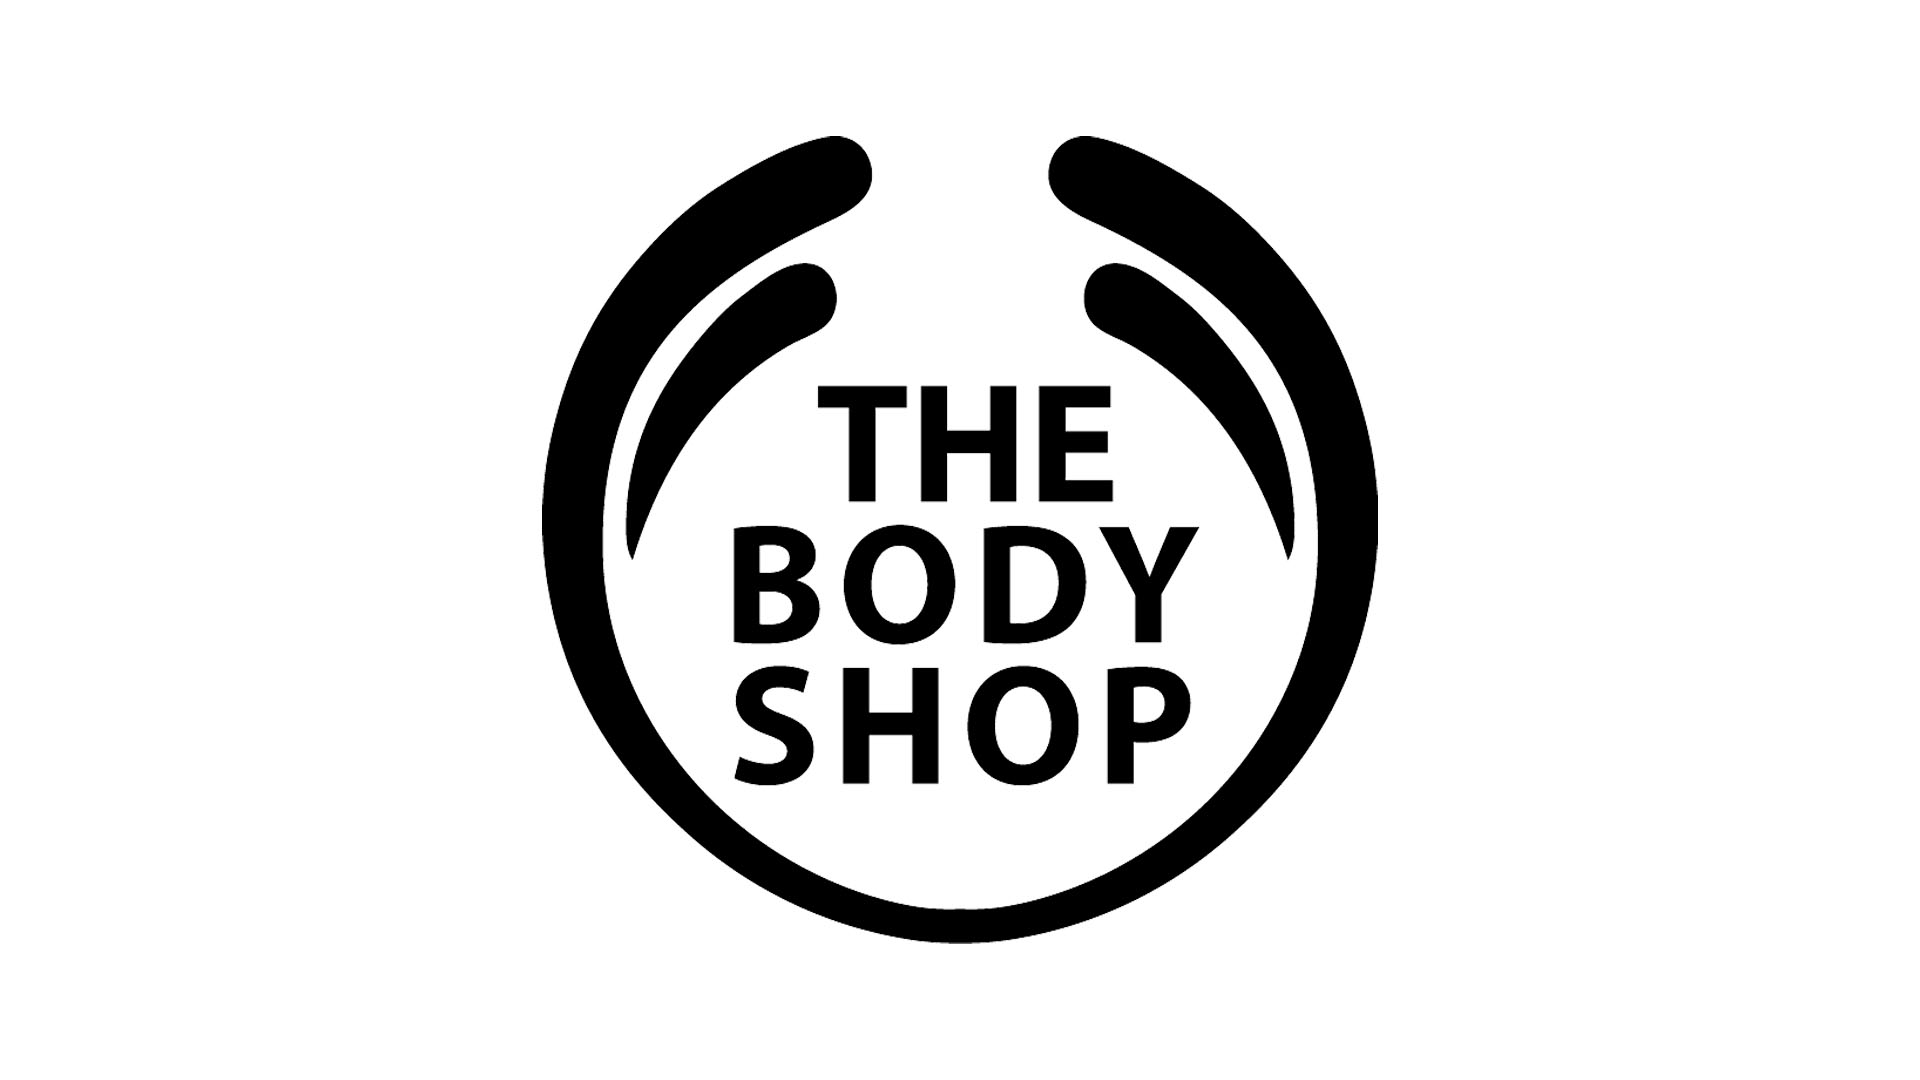 The Body Shop produces enriching skincare, make-up, haircare and body products that are inspired by nature. Founded in 1976 in Brighton, England, by Dame Anita Roddick, The Body Shop is a global beauty brand that pioneered the philosophy that business can be a force for good. This ethos is still the driving force of the brand today.